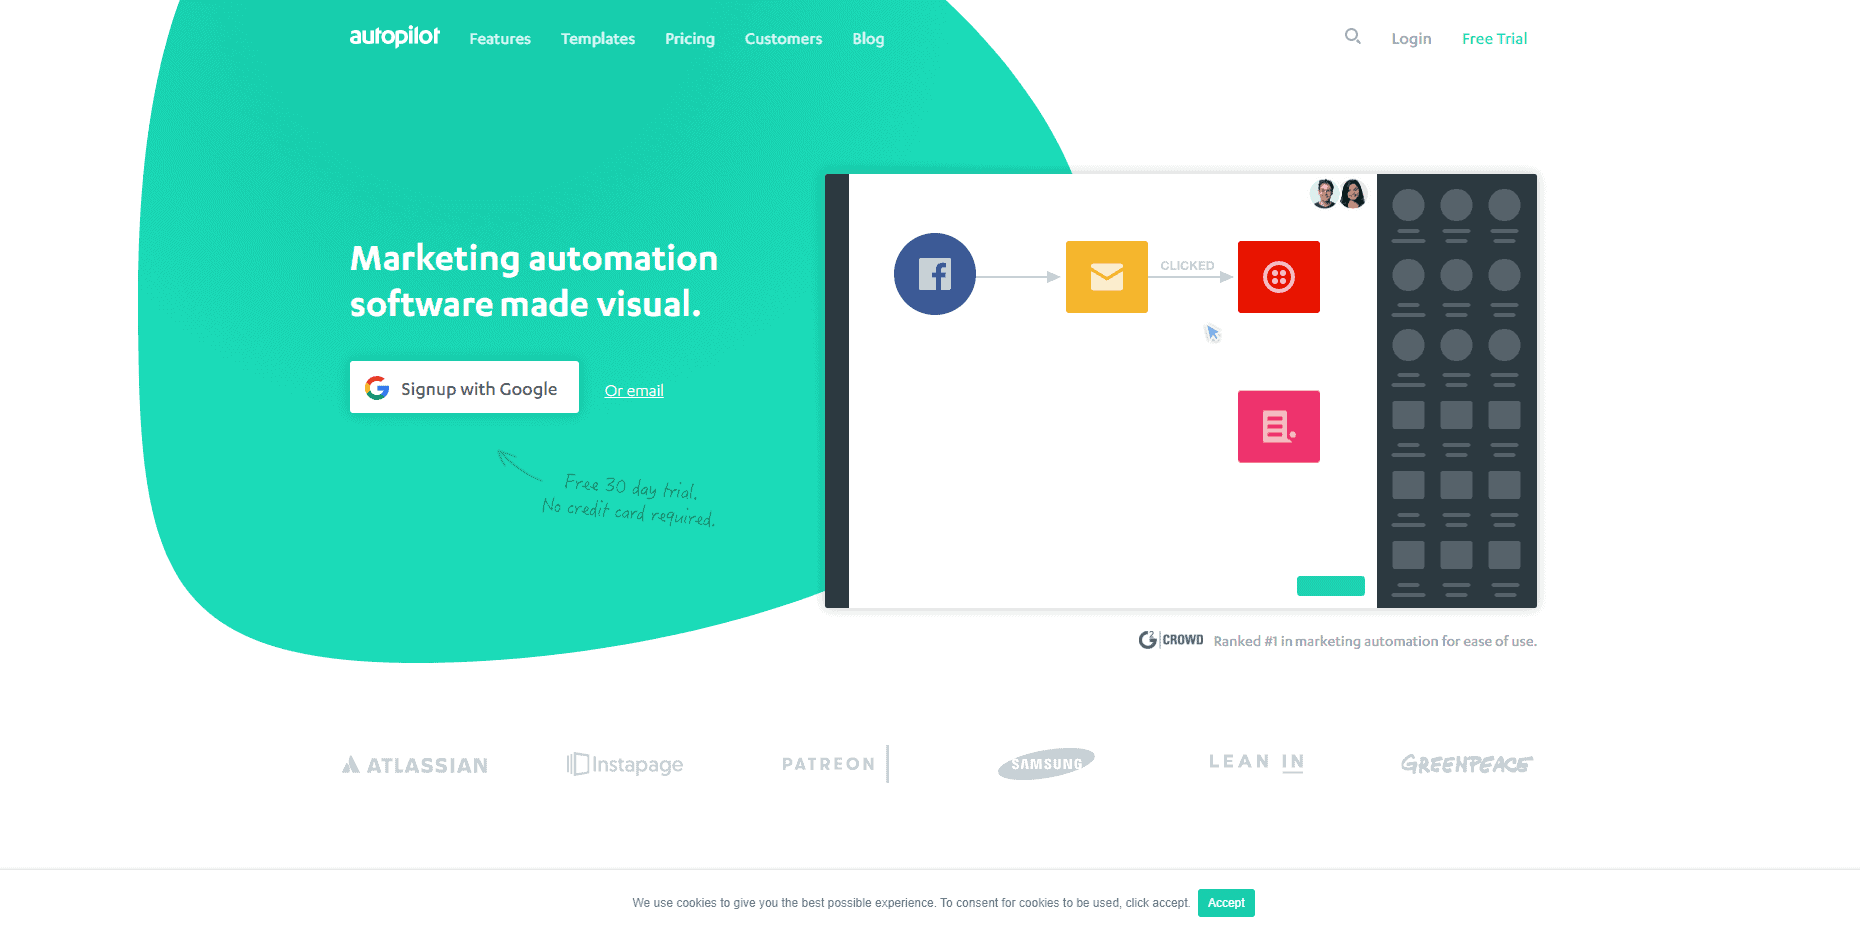 Autopilot - marketing automation tool